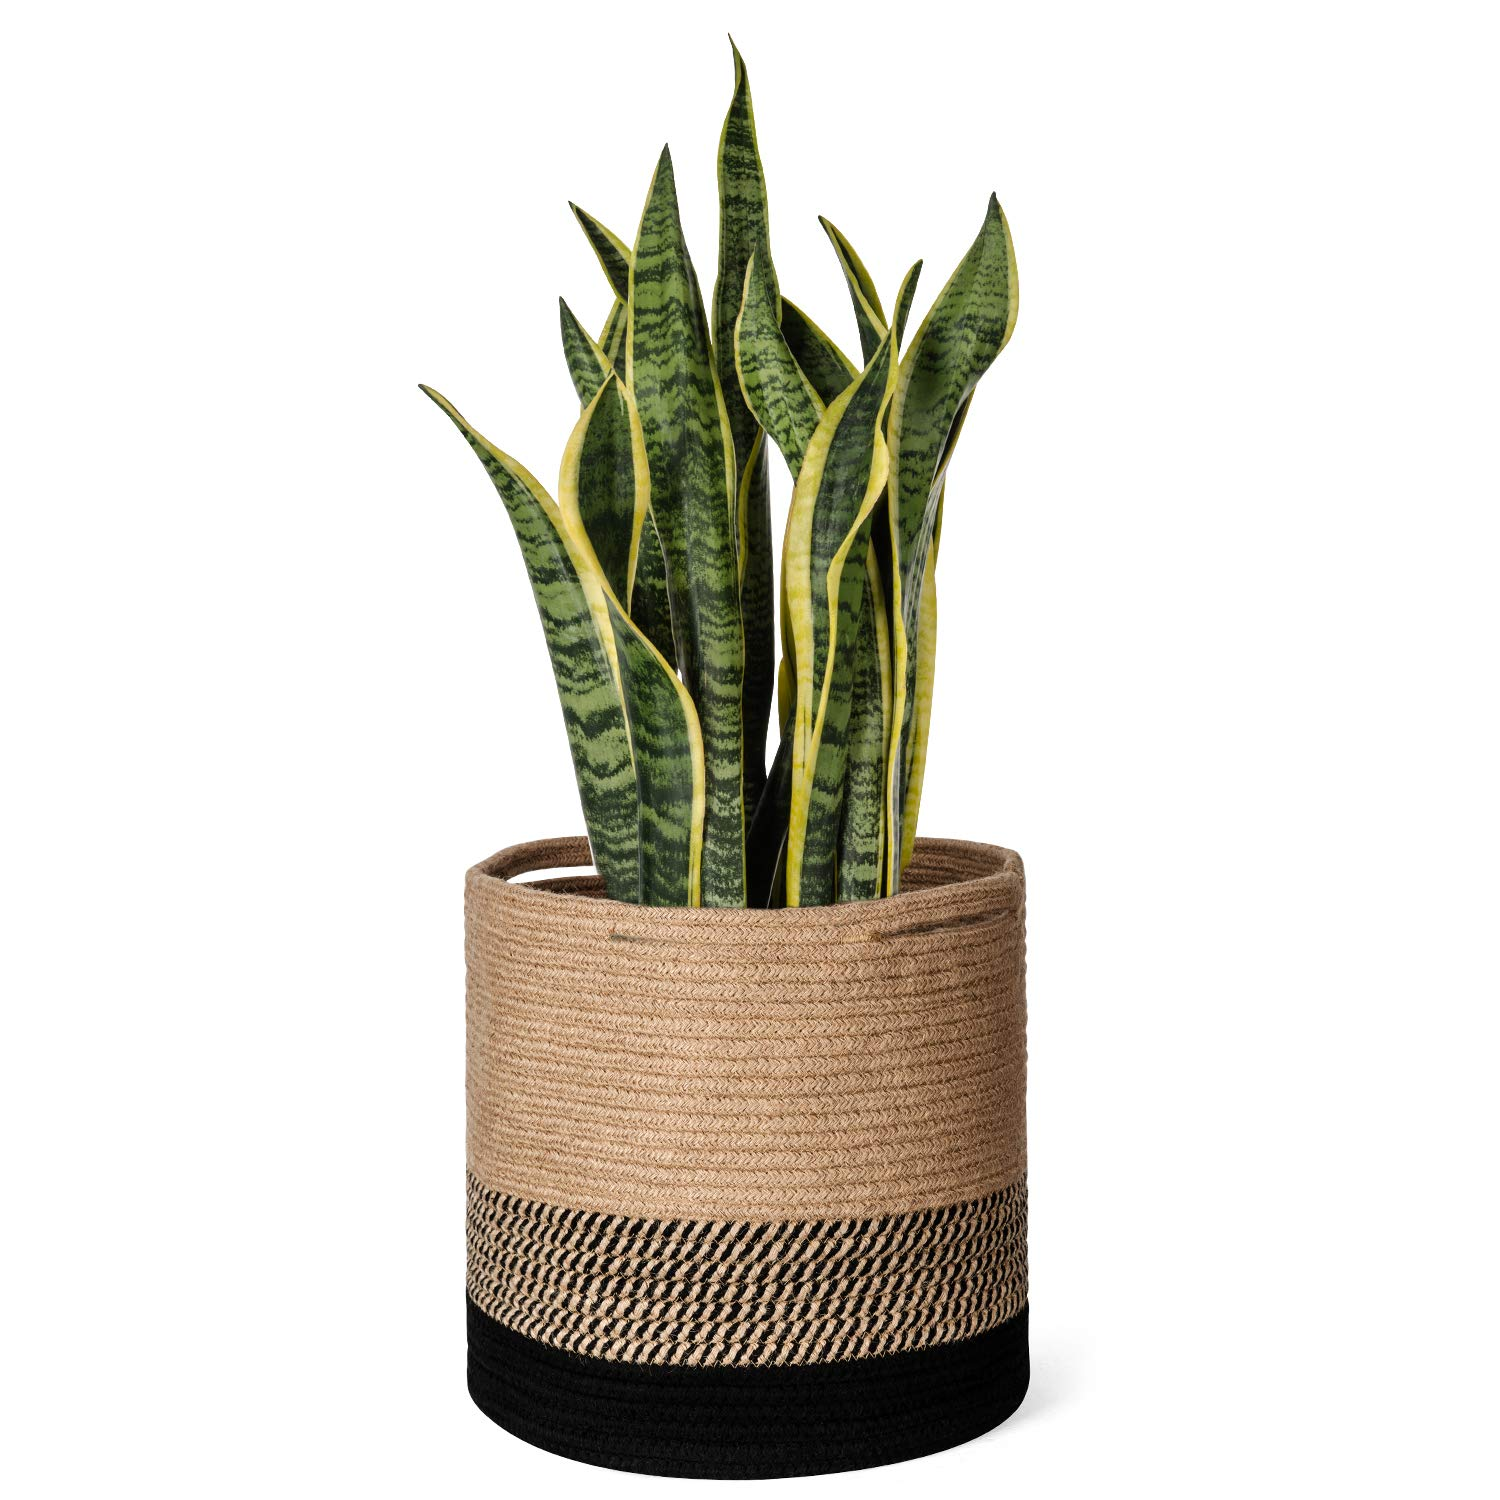 Dahey Jute Rope Plant Basket Modern Woven Storage Basket for Up to 11 Flower Pot, 12 x 12 Decorative Floor Indoor Planter Cover Laundry Storage Bin with Handles Rustic Home Decor, Black and Beige